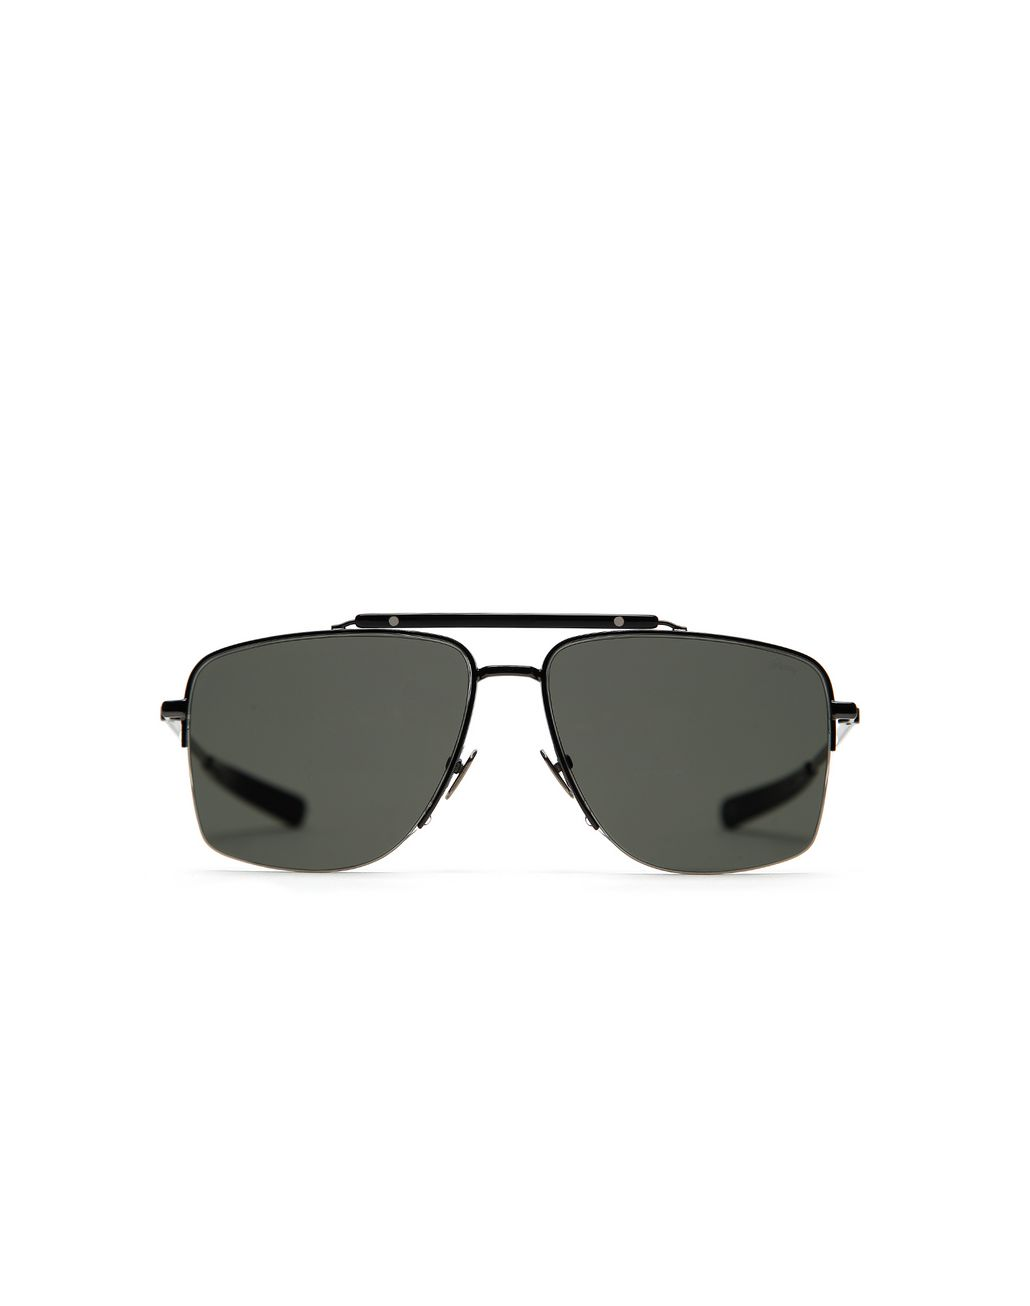 BRIONI Gunmetal and Black Caravan Sunglasses with Gray Lenses Sunglasses Man f